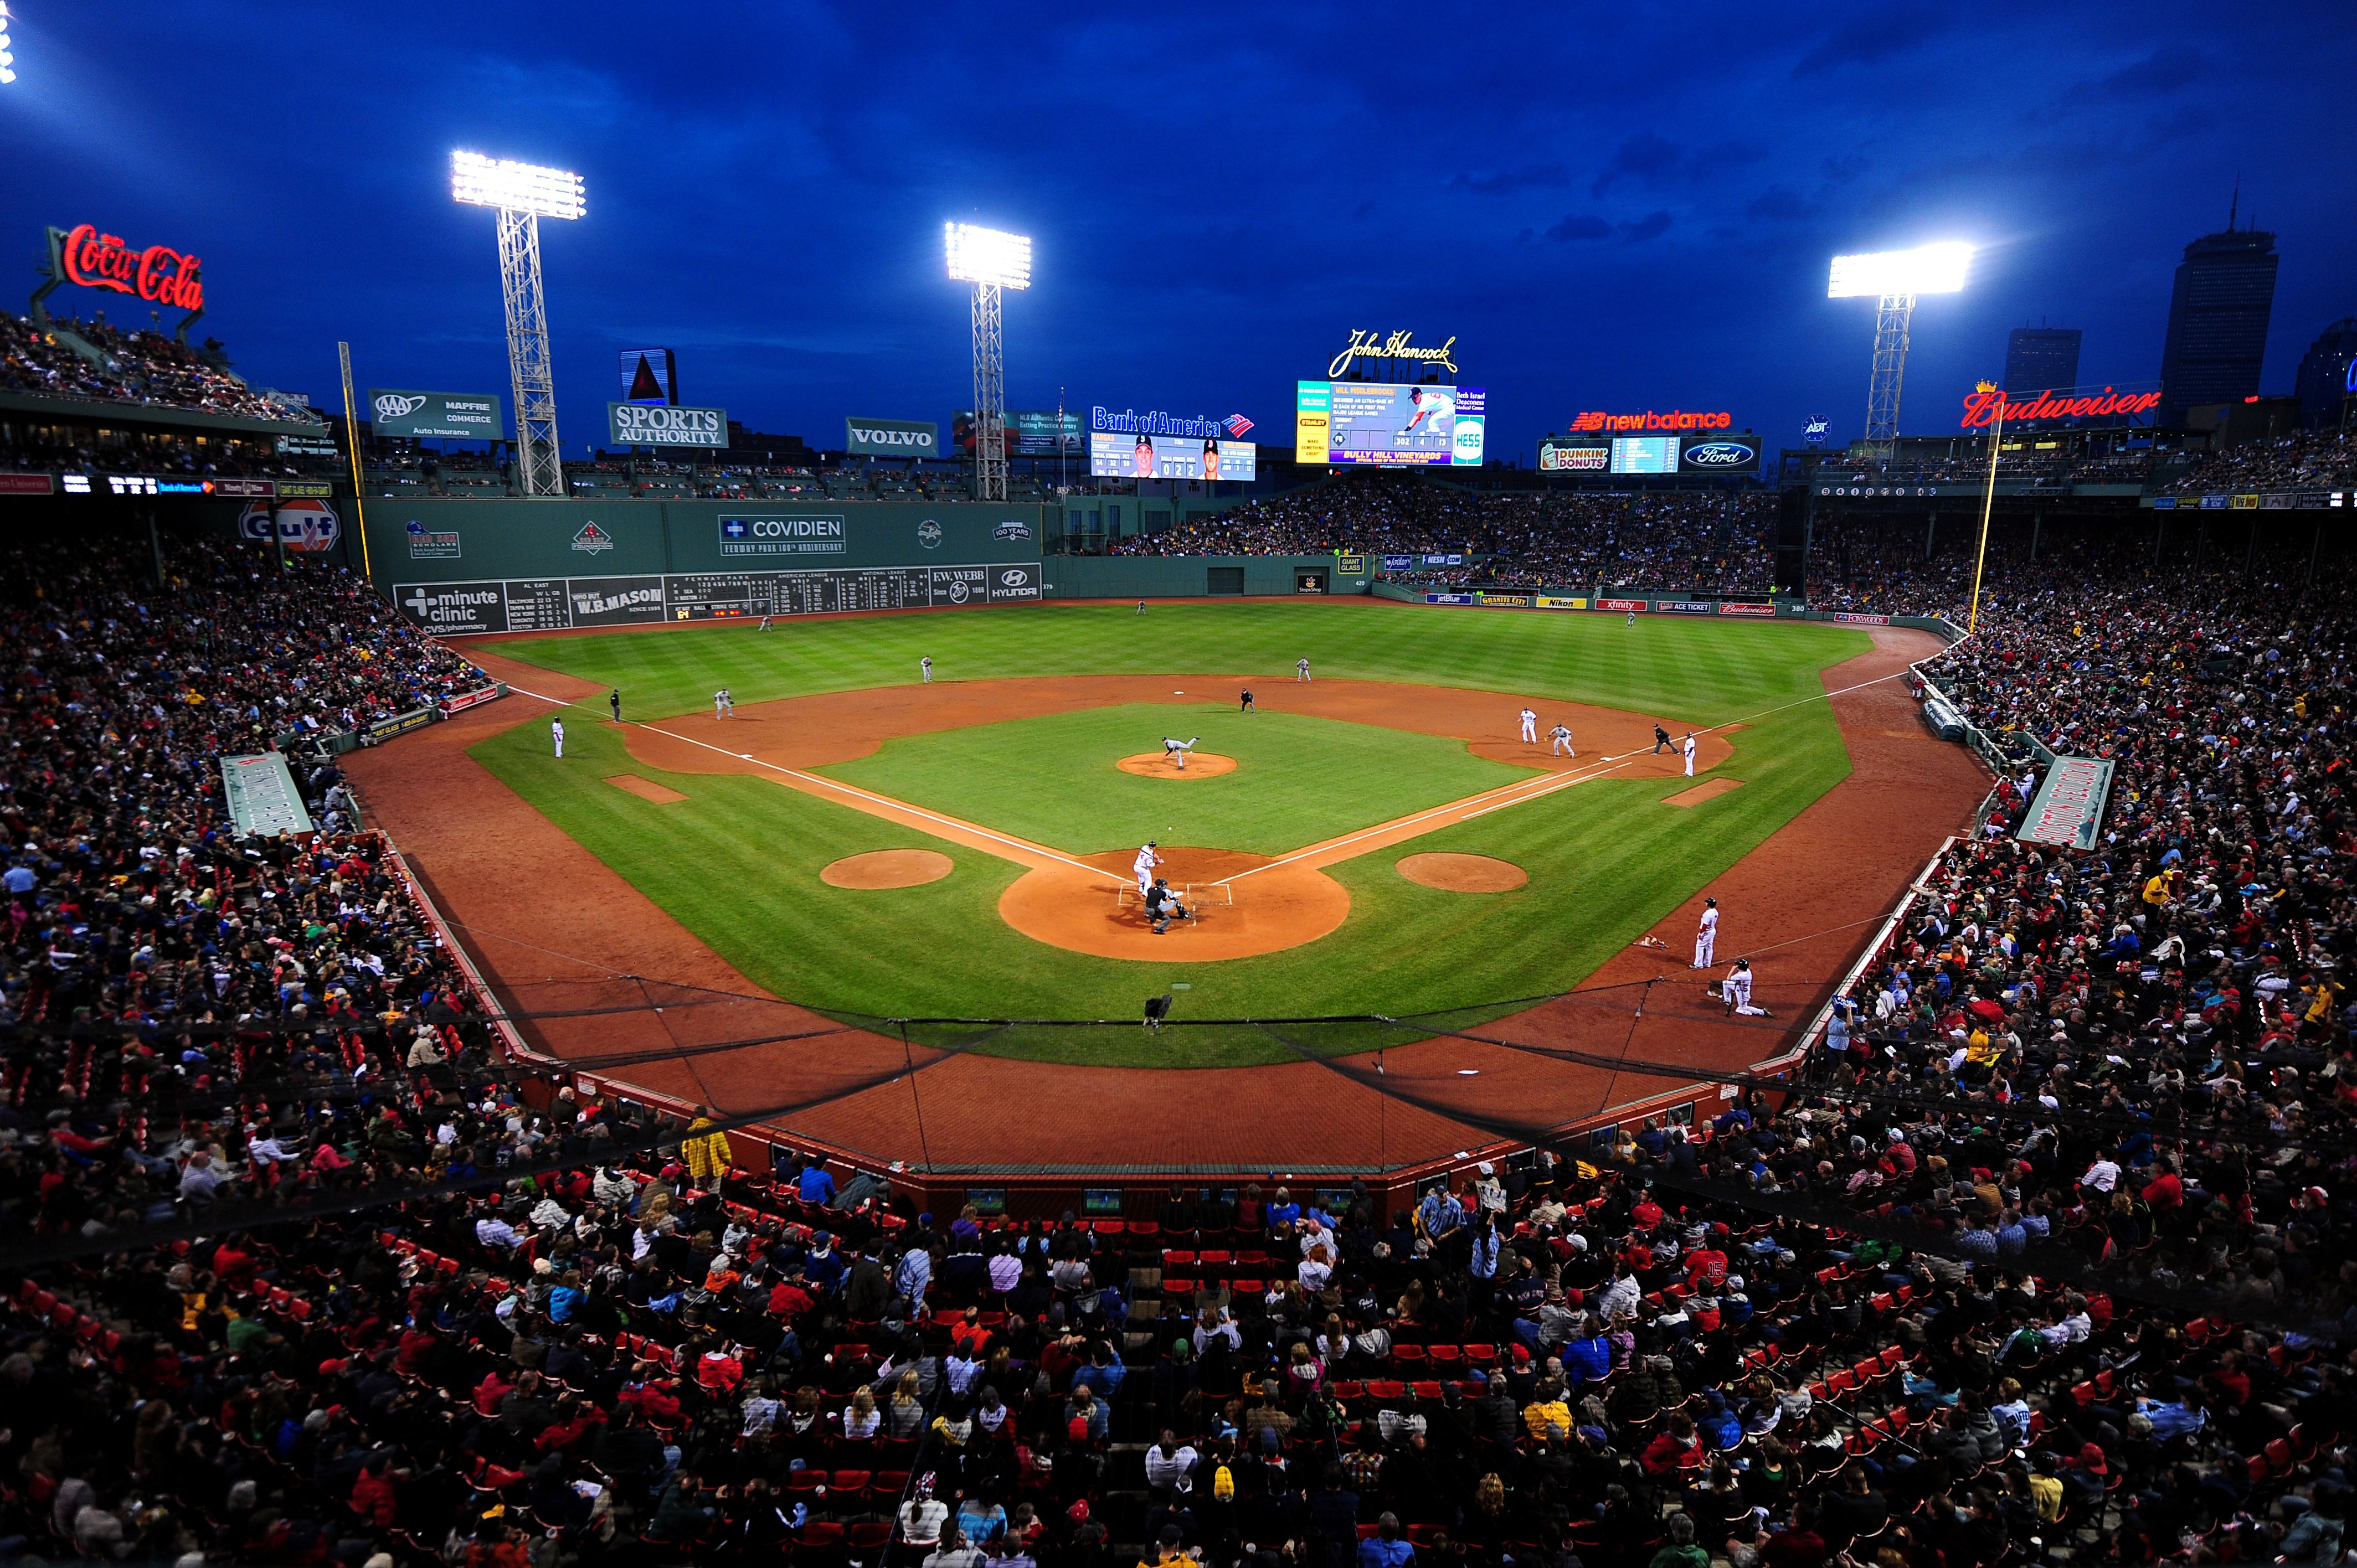 Red Sox Wallpapers   Top Red Sox Backgrounds   WallpaperAccess 4256x2832